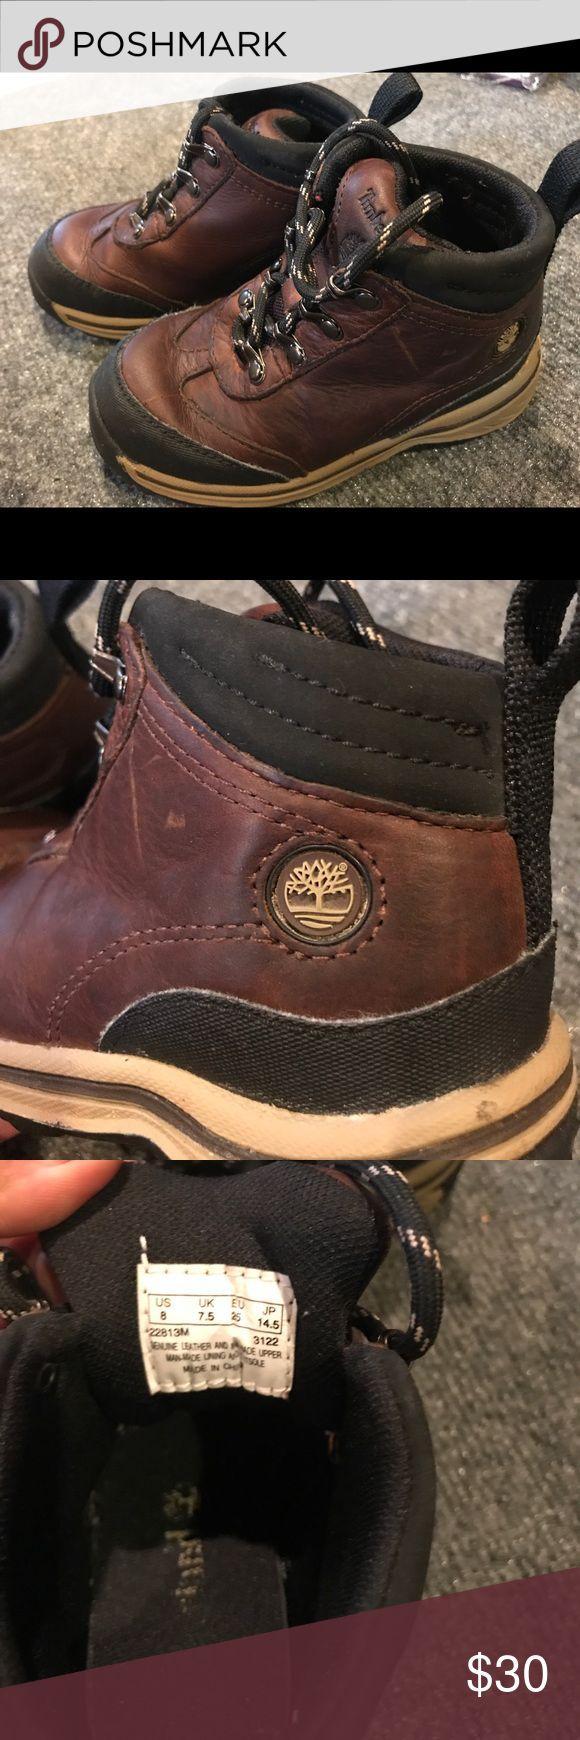 PRICE DROP!! Timberland boots Adorable leather timberland boots   Great condition Timberland Shoes Boots